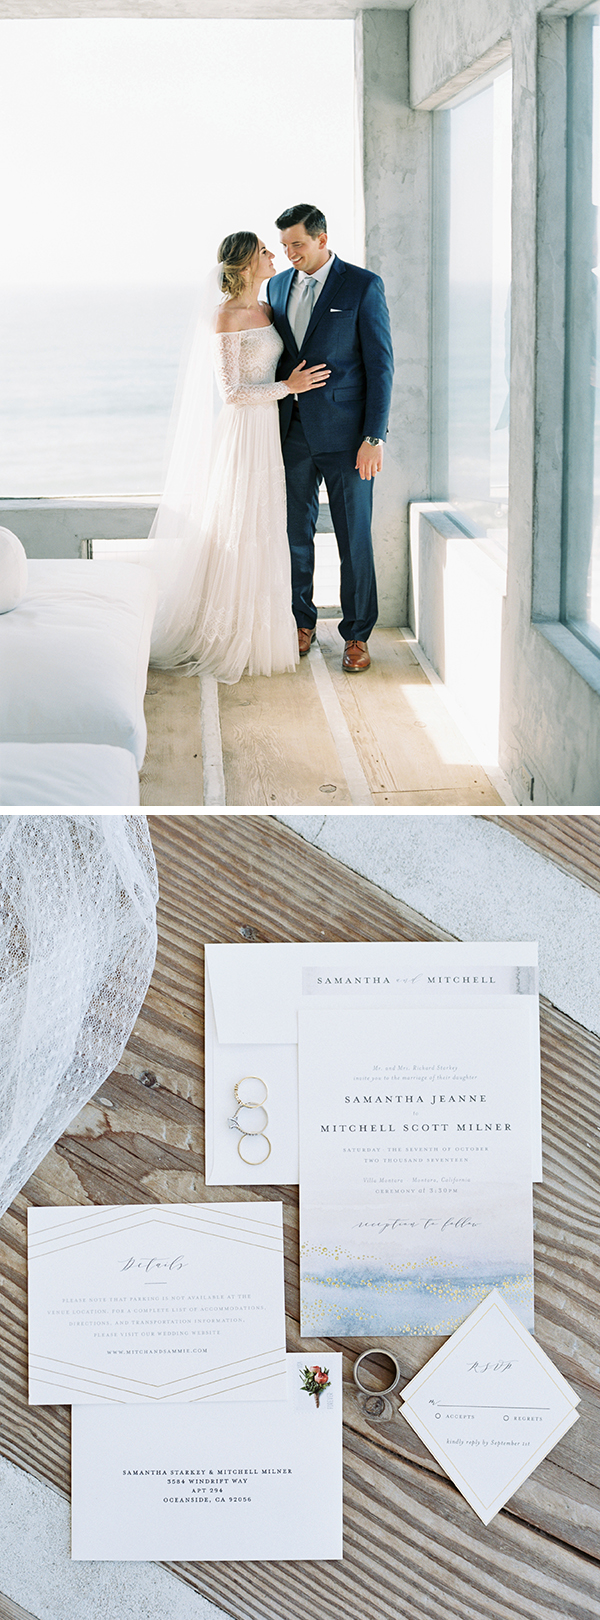 minted-wedding-invitation-beach-wedding